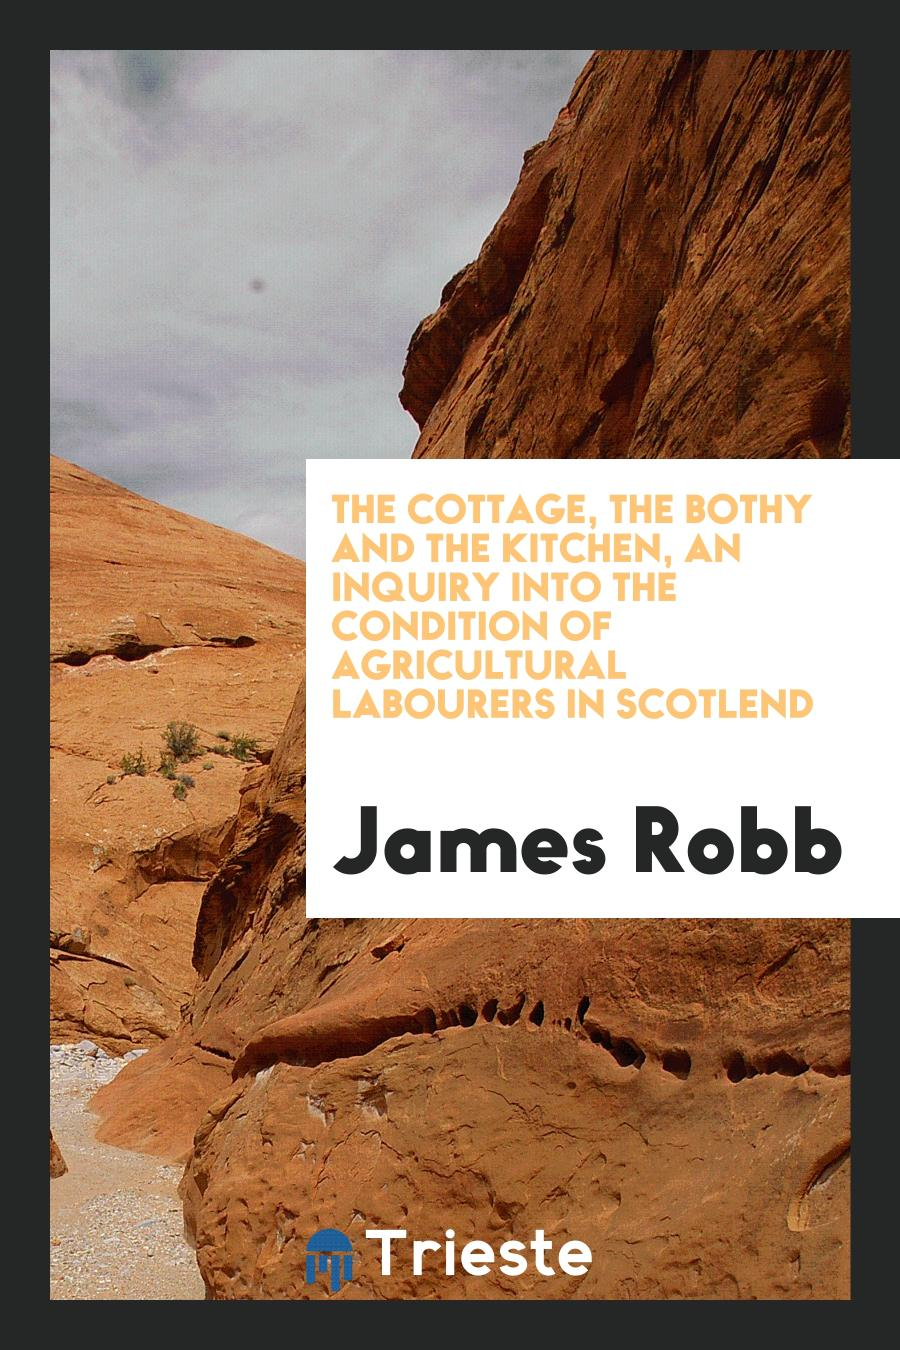 The Cottage, the Bothy and the Kitchen, an Inquiry Into the Condition of Agricultural Labourers in Scotlend